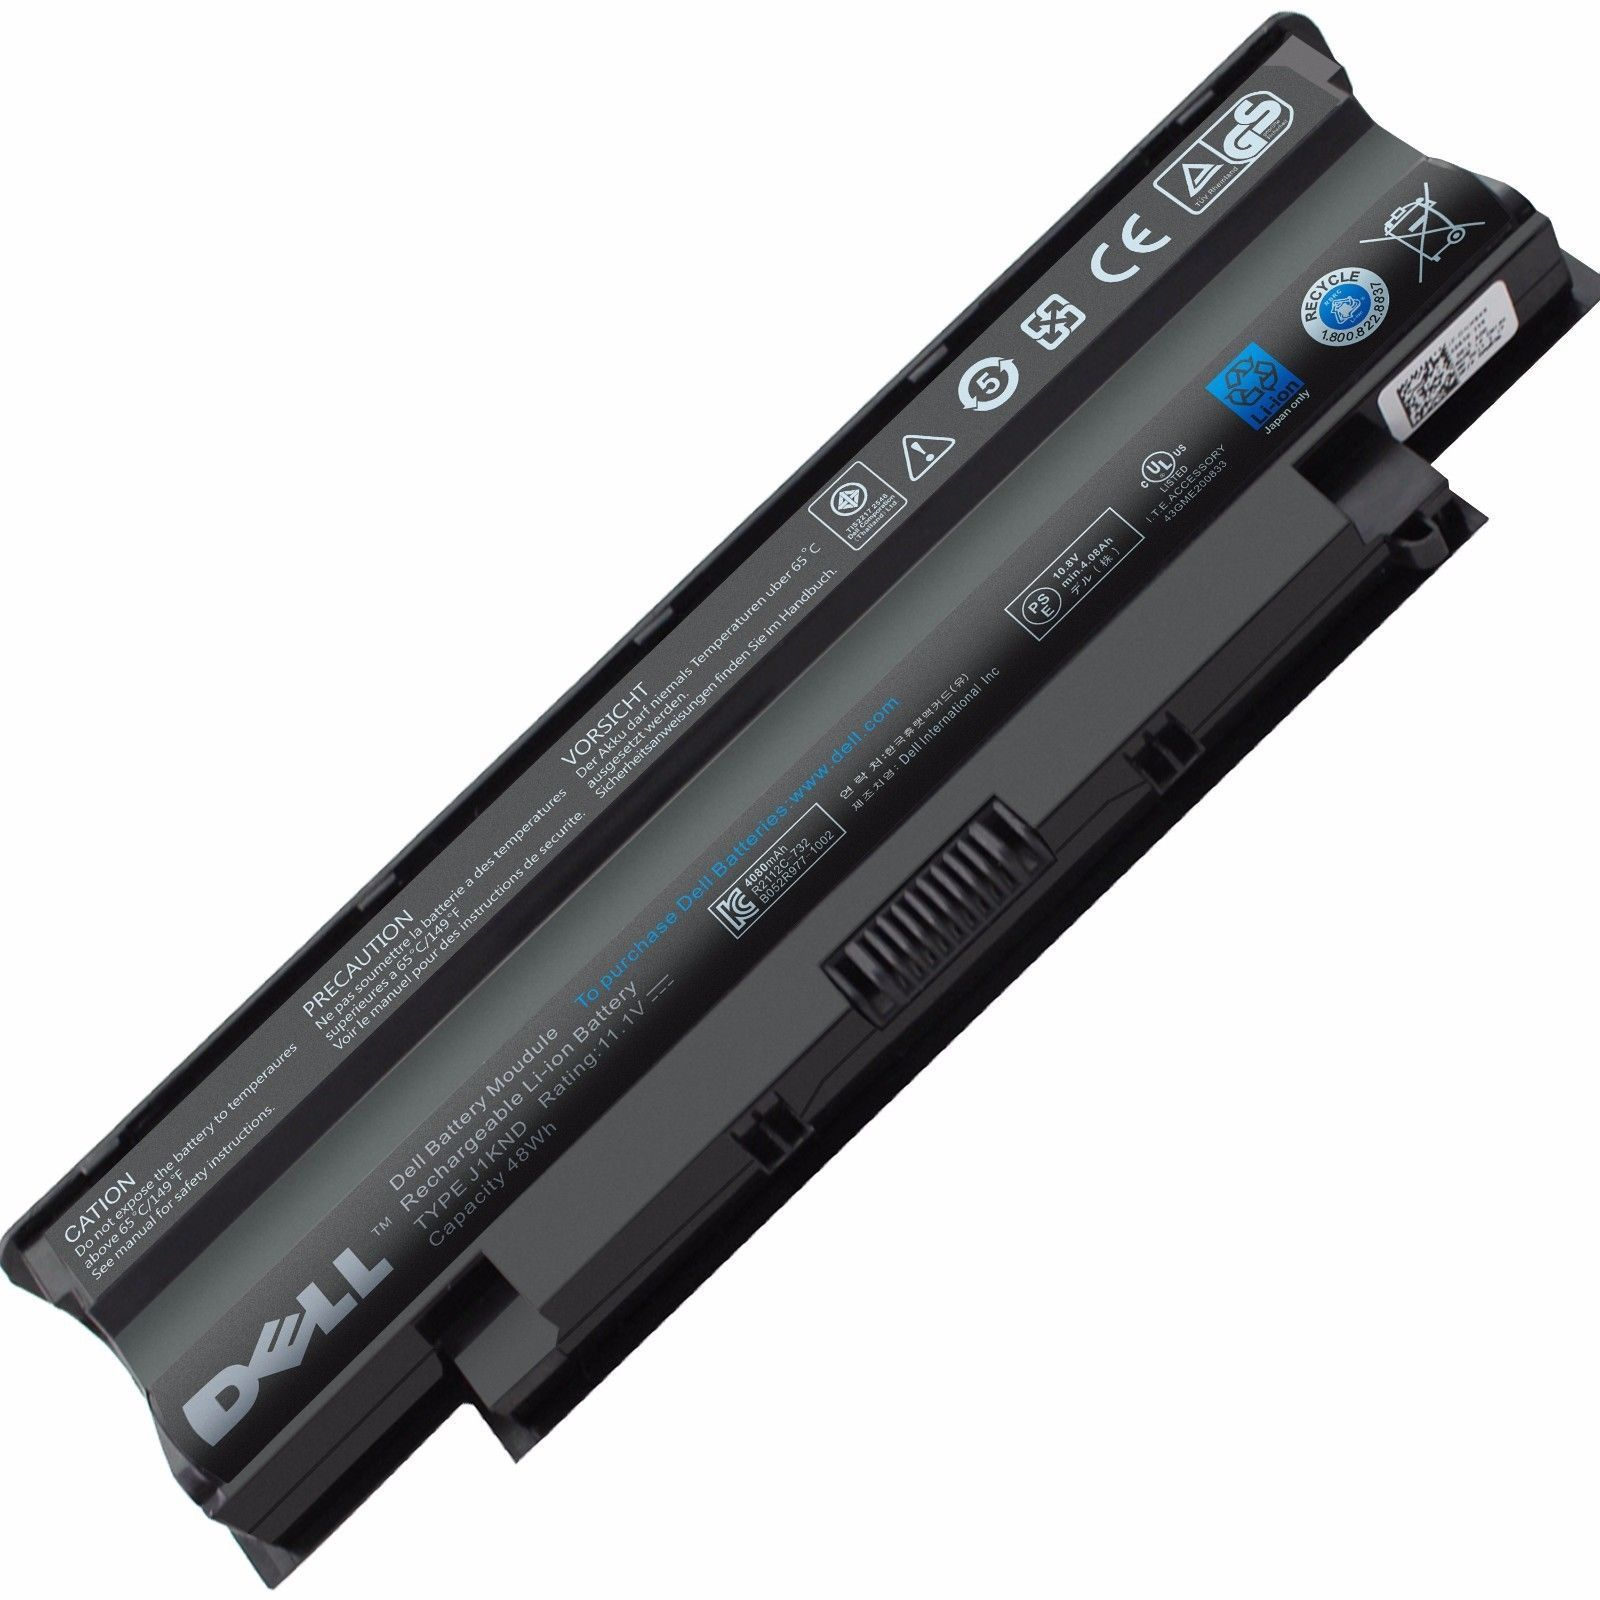 Original 48Wh Dell 04YRJH 06P6PN Battery